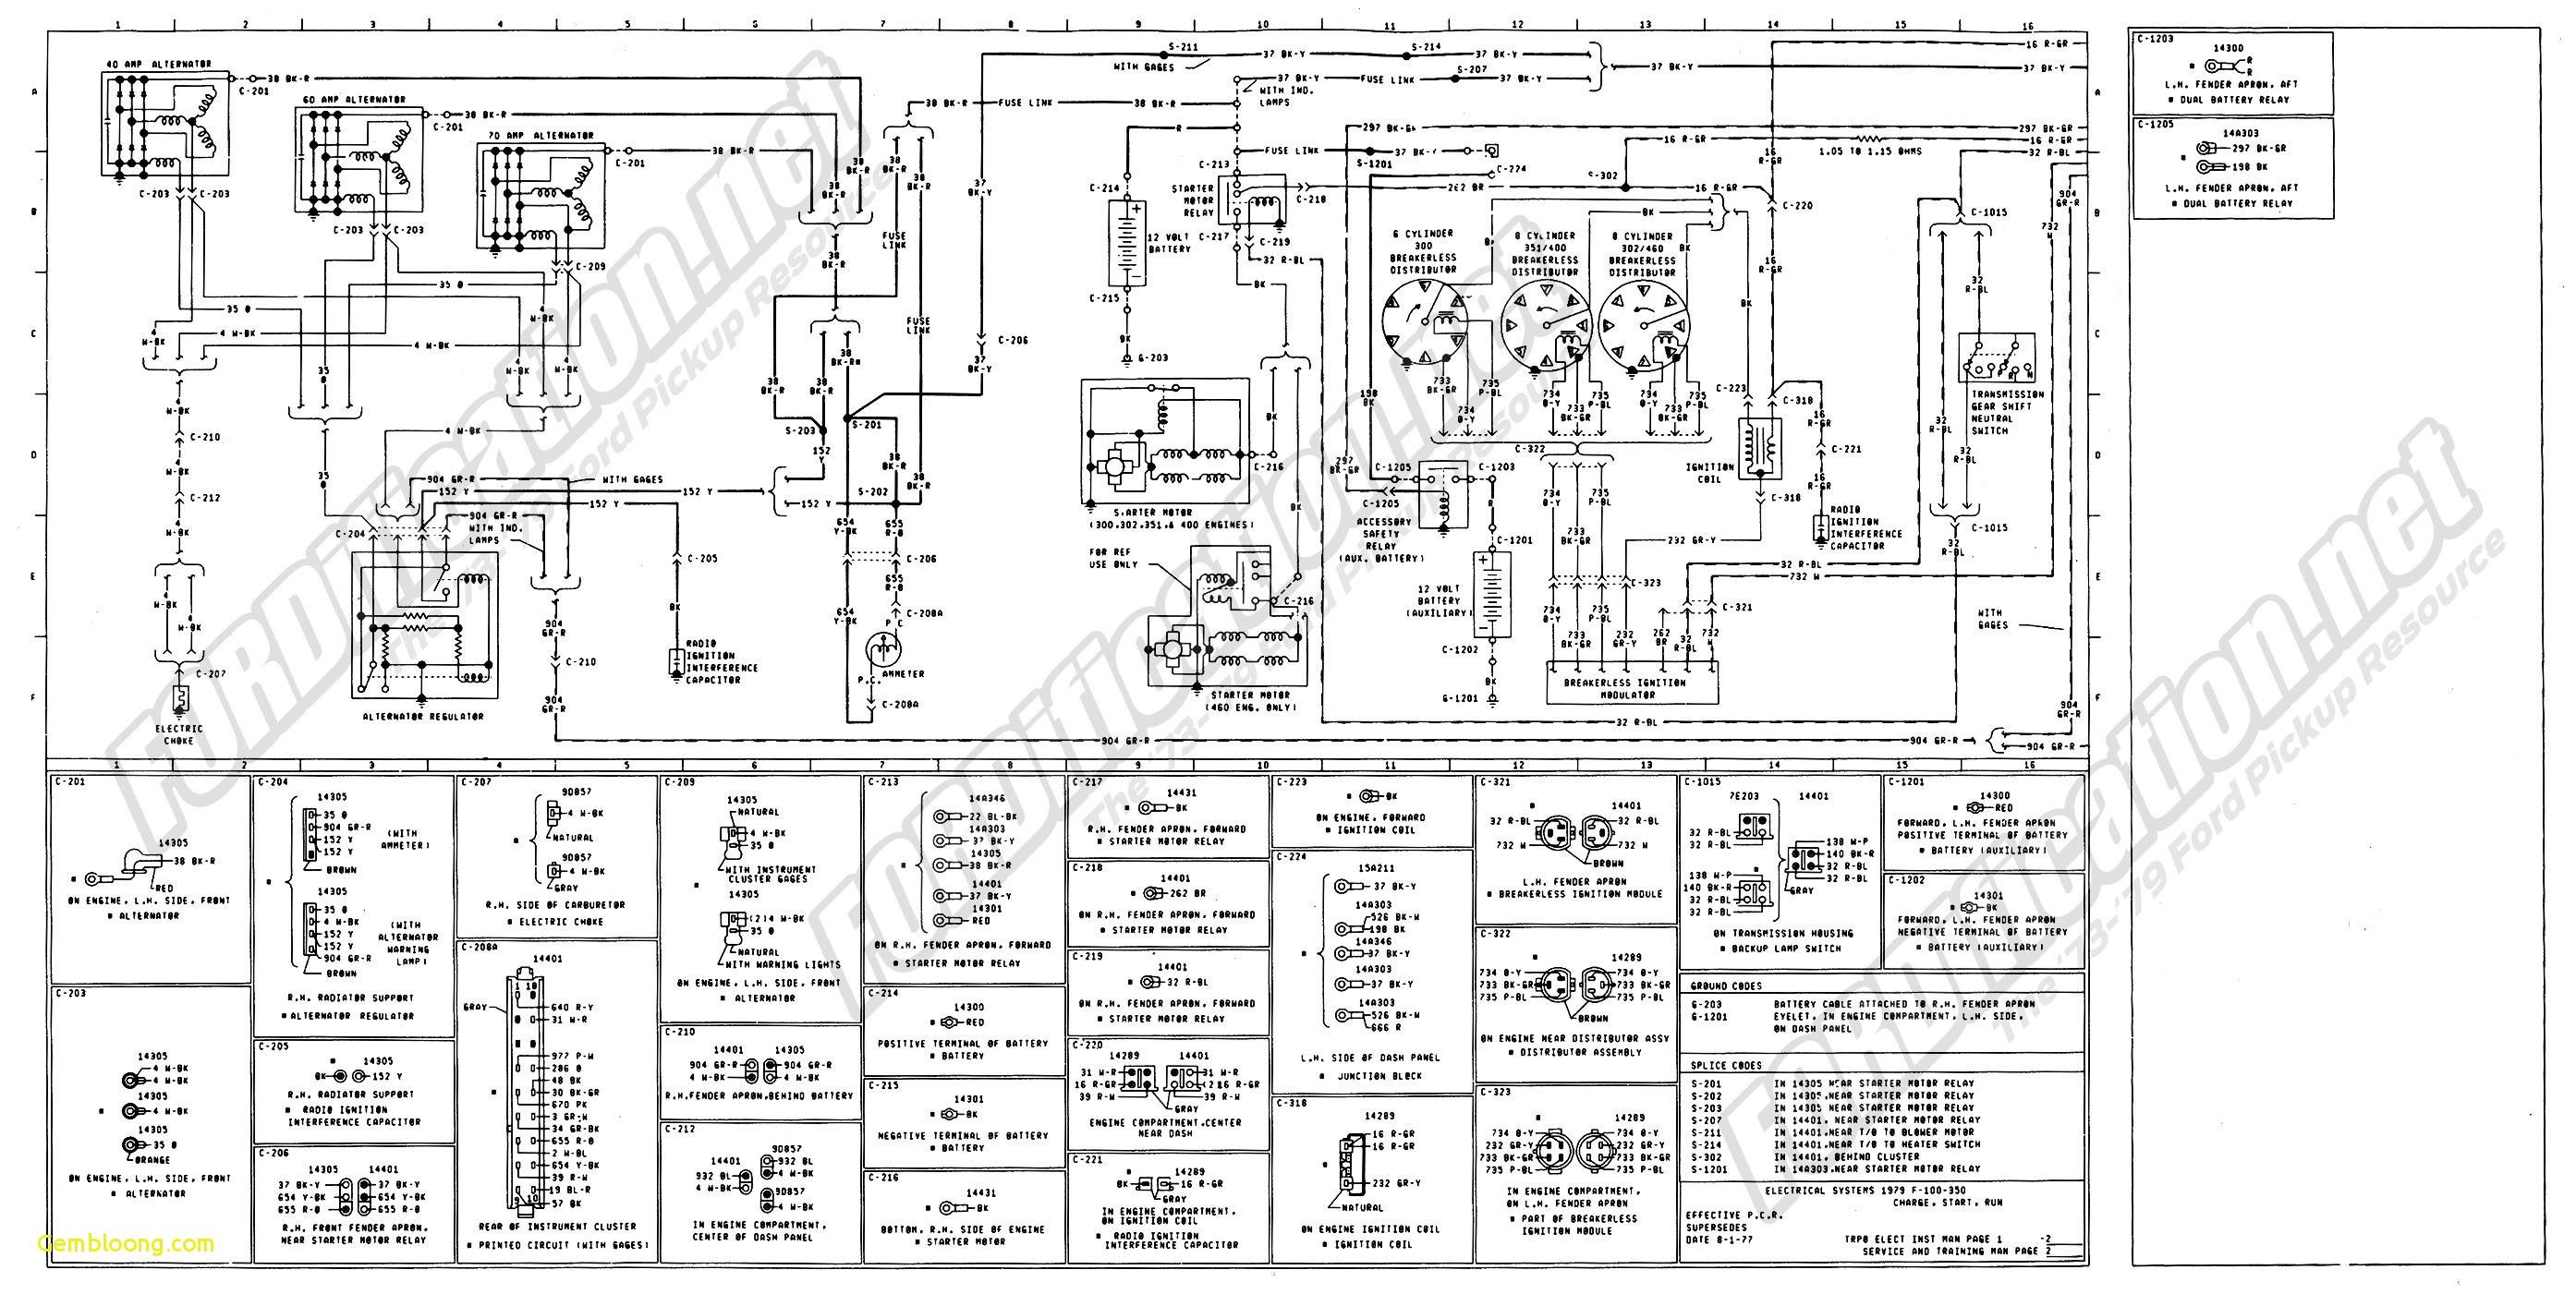 Unique 1997 Jeep Grand Cherokee Instrument Cluster Wiring Diagram Jeep Grand Cherokee Jeep Grand Diagram